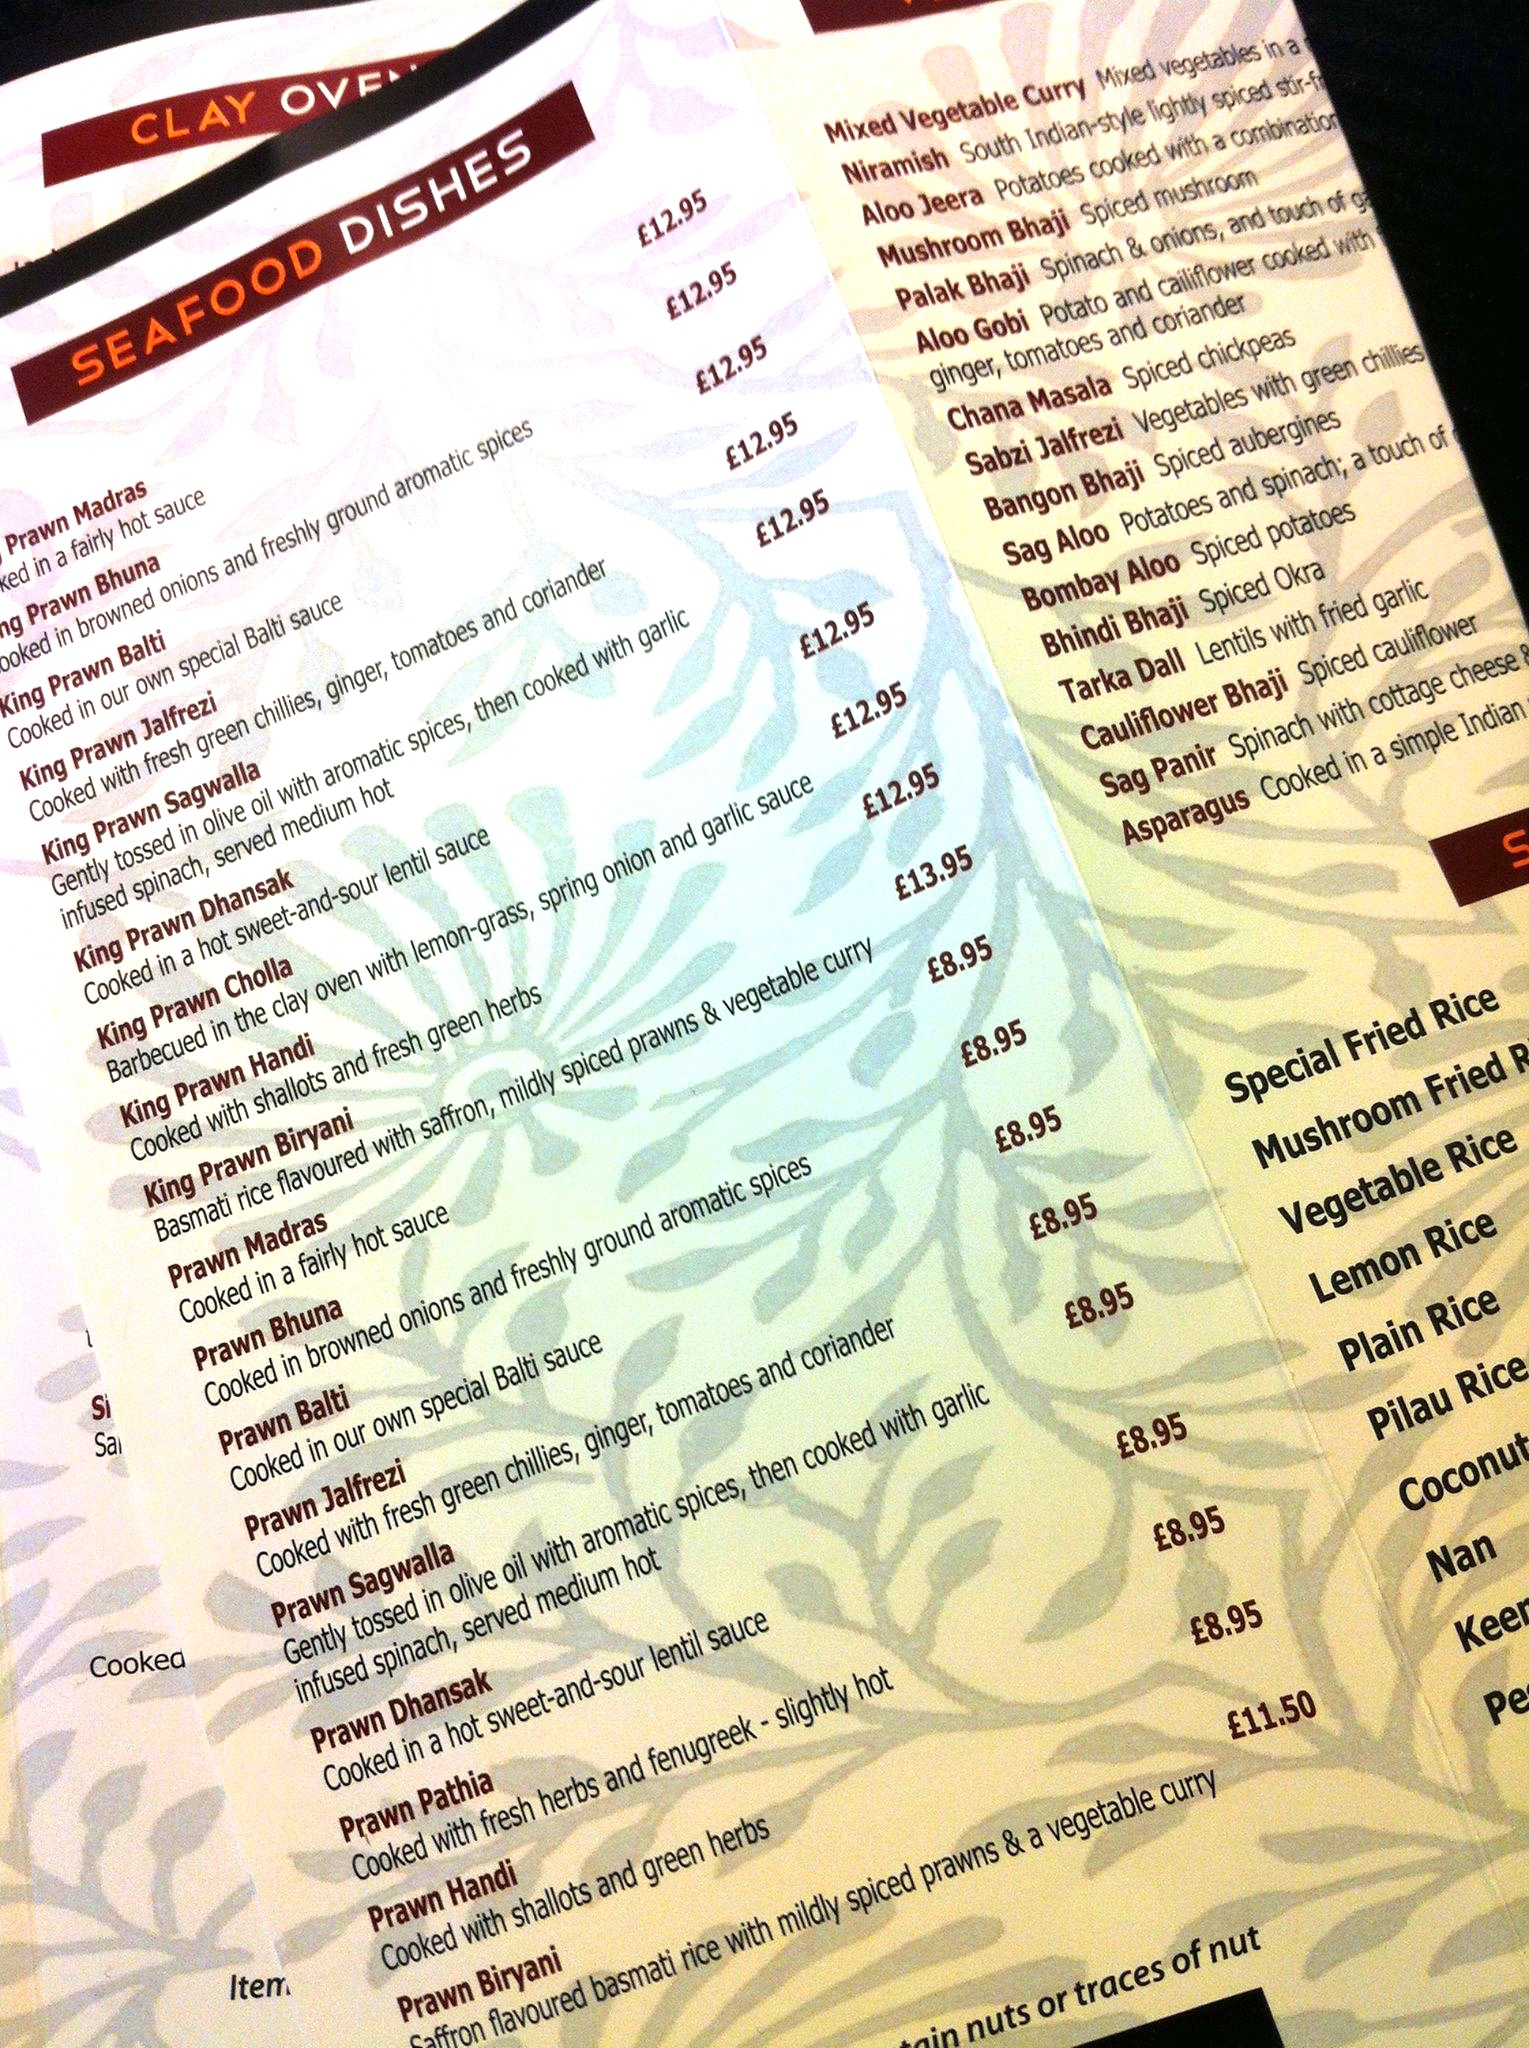 18 Prawn Dishes In One Section of One Menu